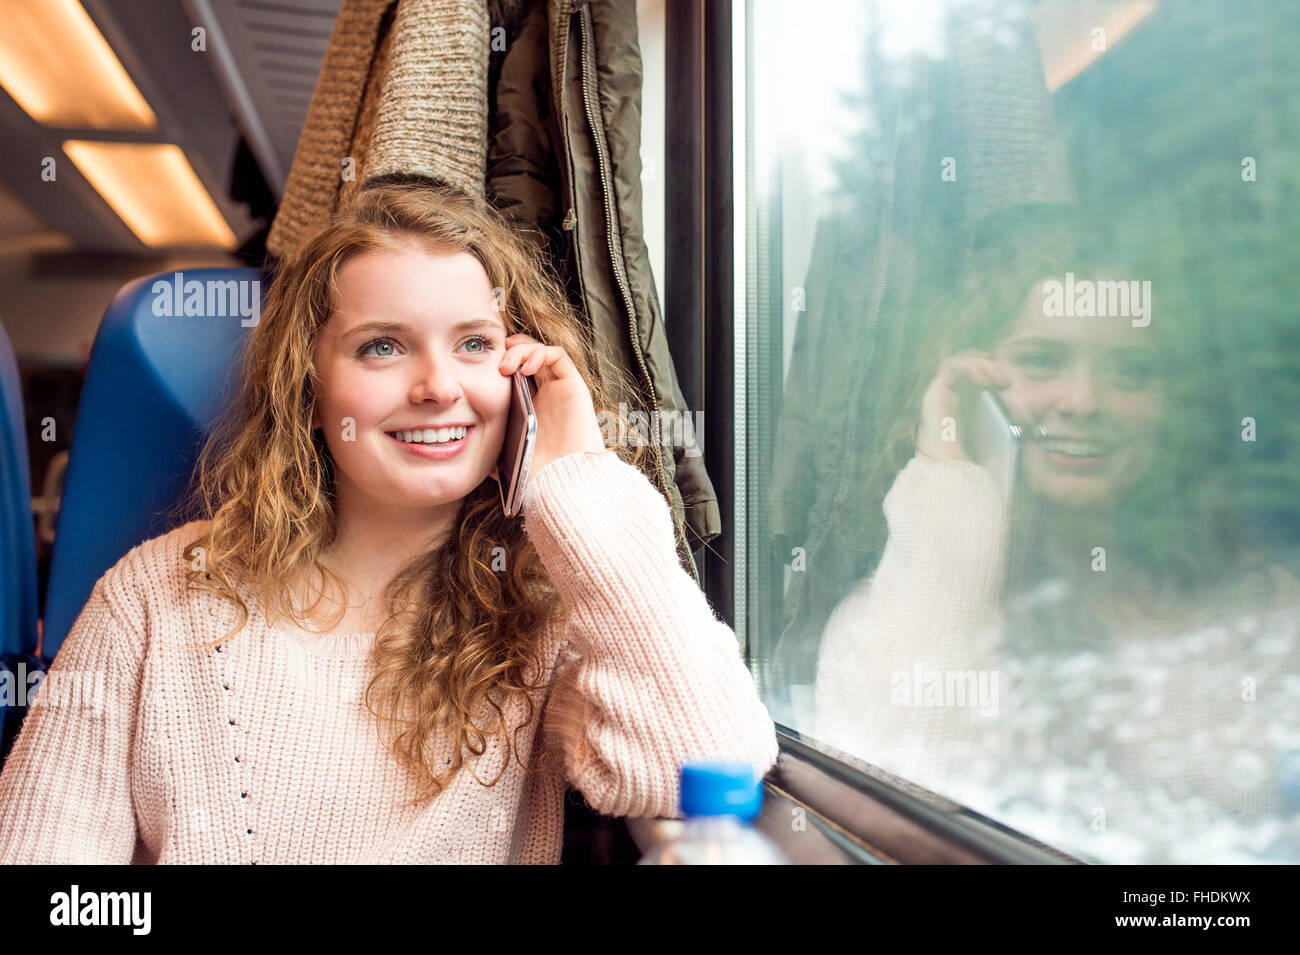 Smiling teenage girl in train car on cell phone - Stock Image